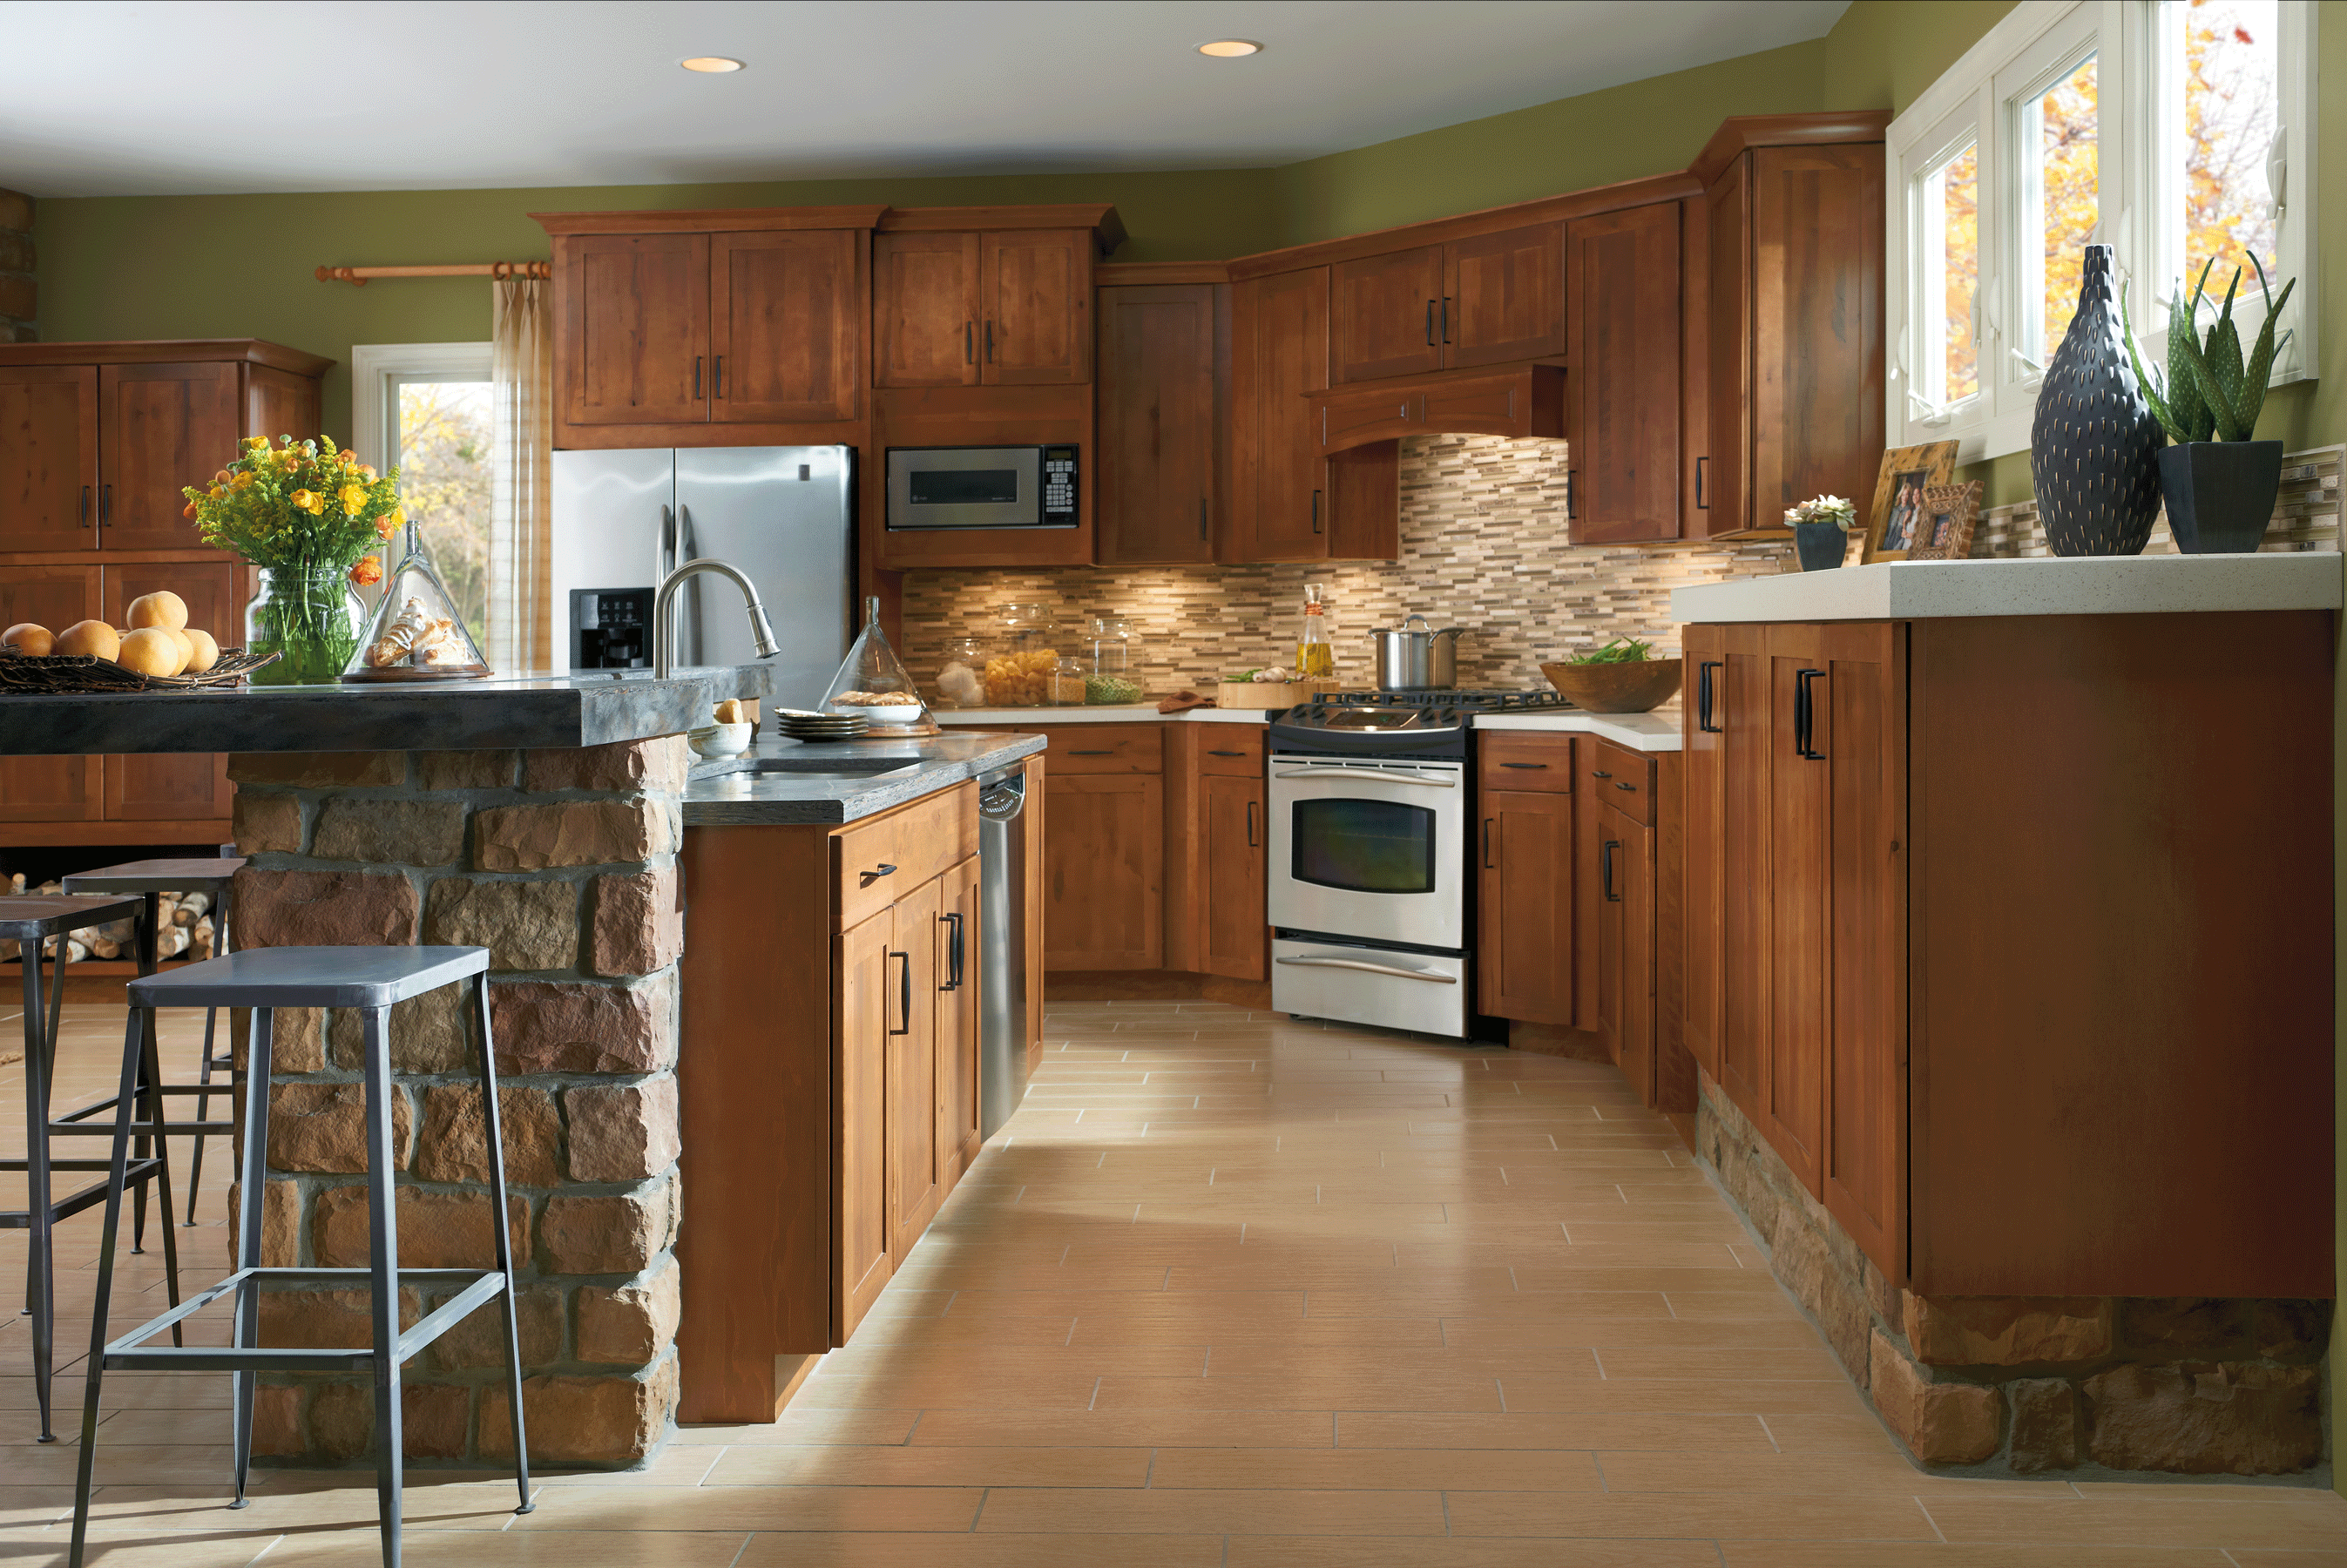 Rustic Birch Brings Rich Warmth To The Clean Classic Lines Of Harrison Flat Panel Cabinet Doors Rustic Kitchen Birch Kitchen Cabinets Rustic Kitchen Cabinets